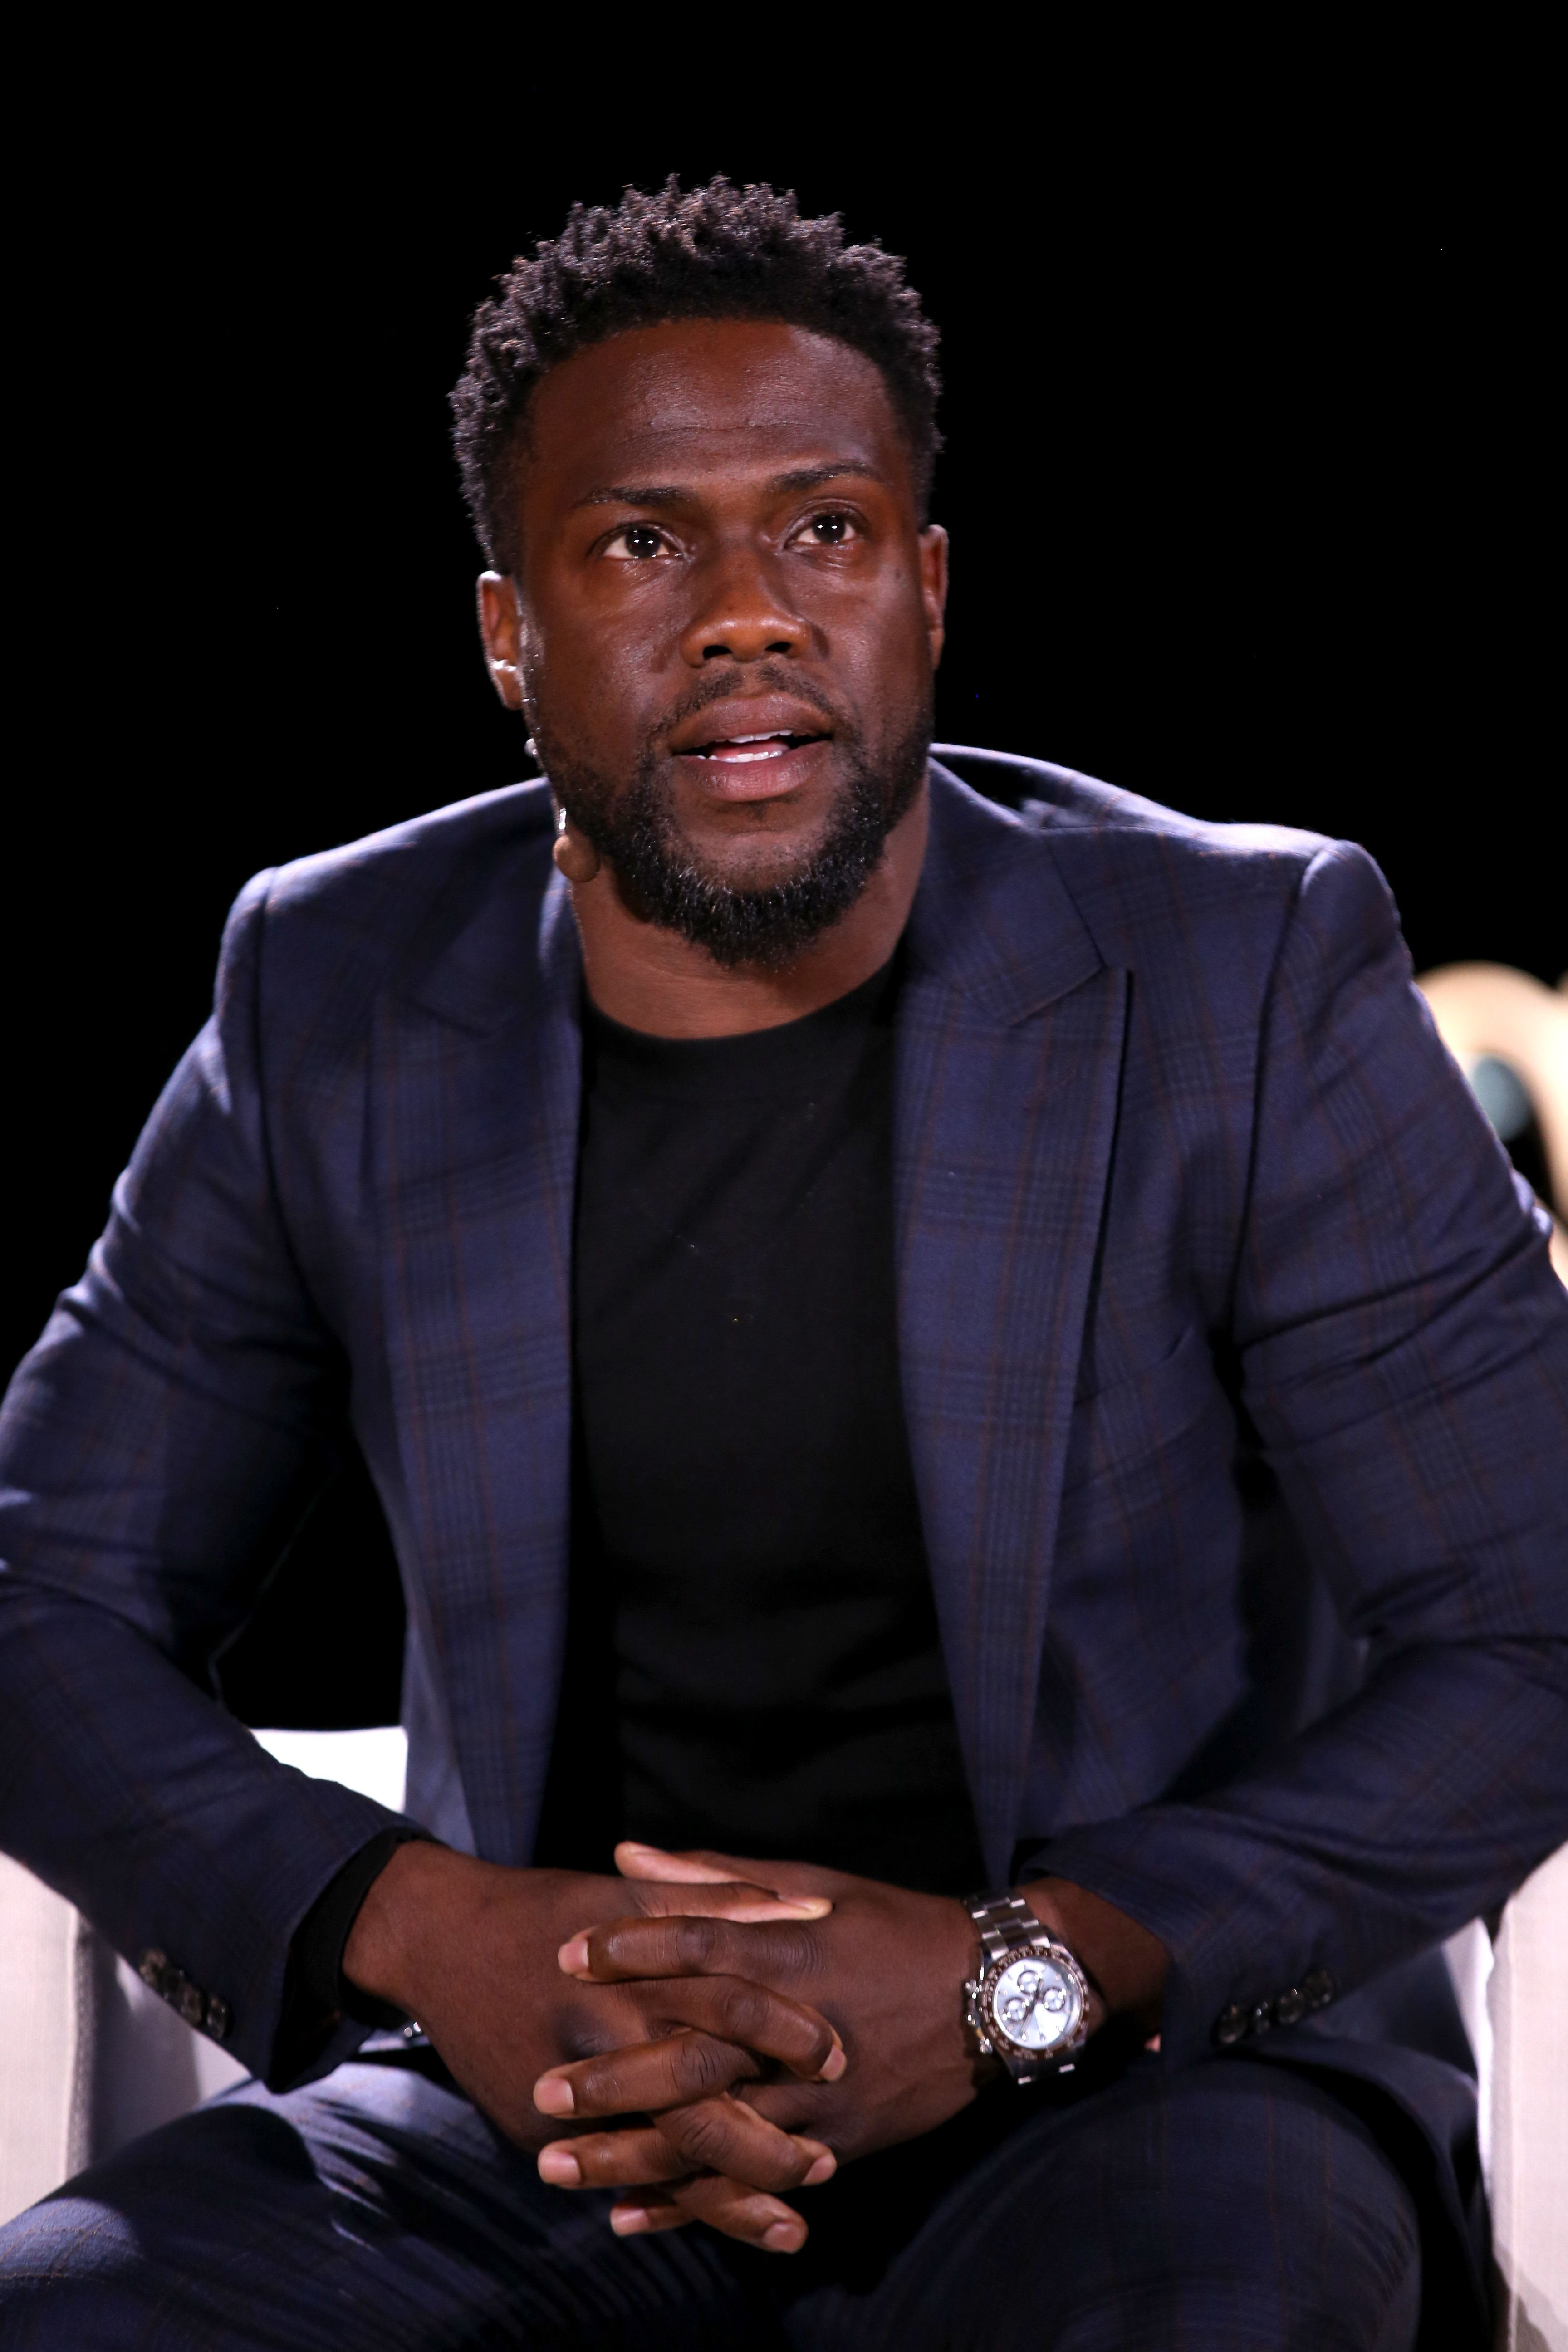 Kevin Hart Says Oscars Asked Him To Apologize For Old Homophobic Tweets